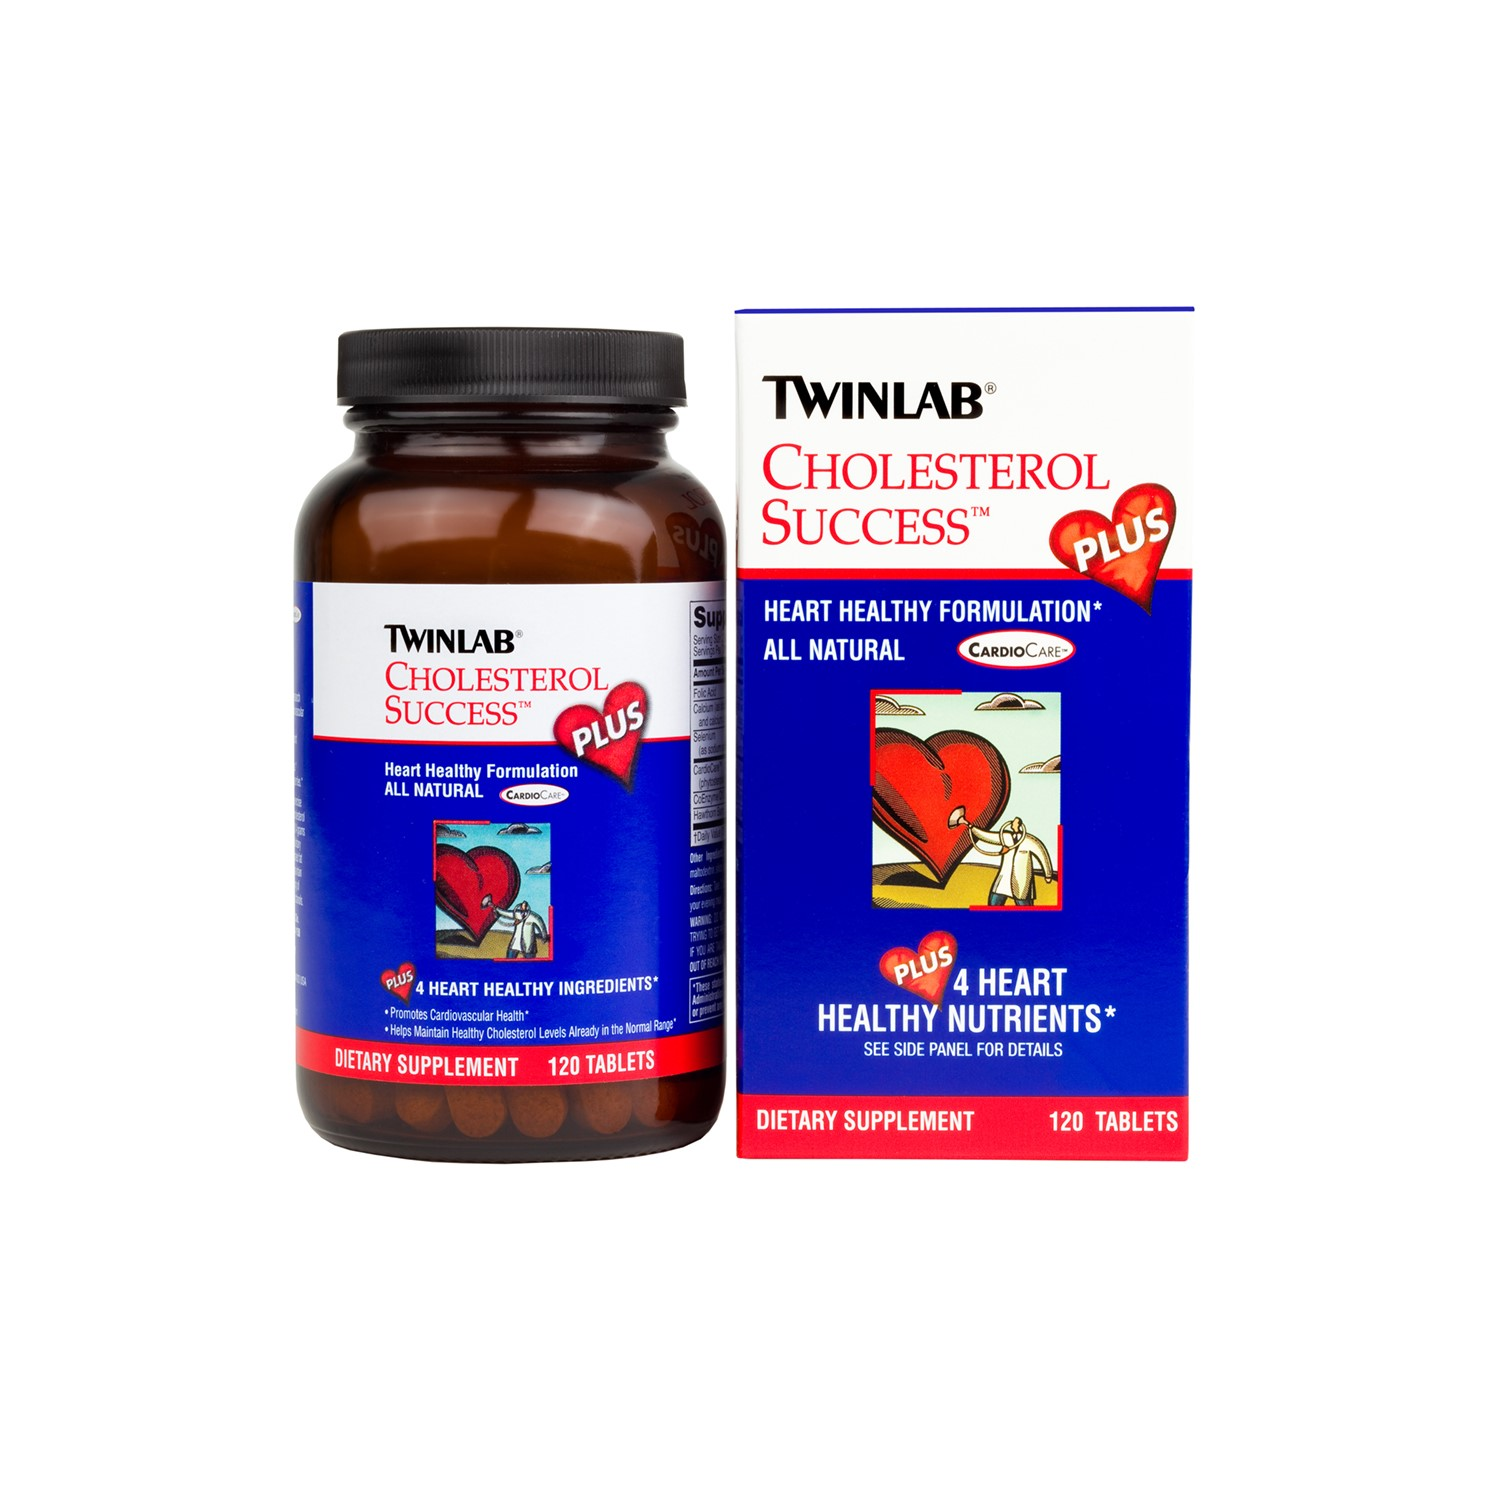 Twinlab Cholesterol Success Plus Tablets, 120 Ct